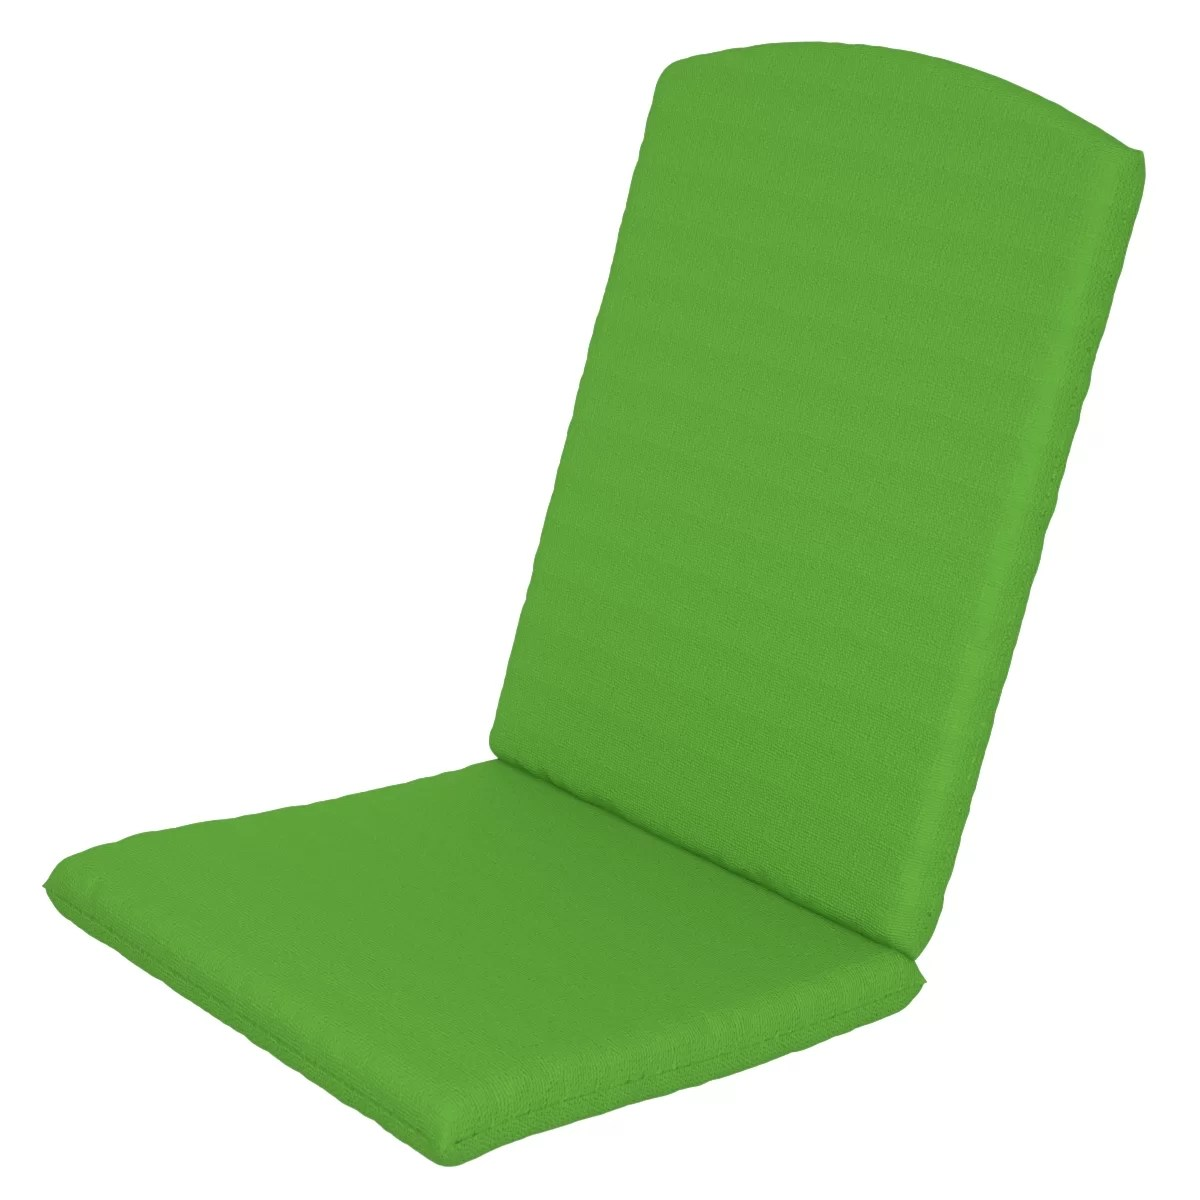 Trex Rocking Chairs Trex Solid Outdoor Sunbrella Rocking Chair Cushion